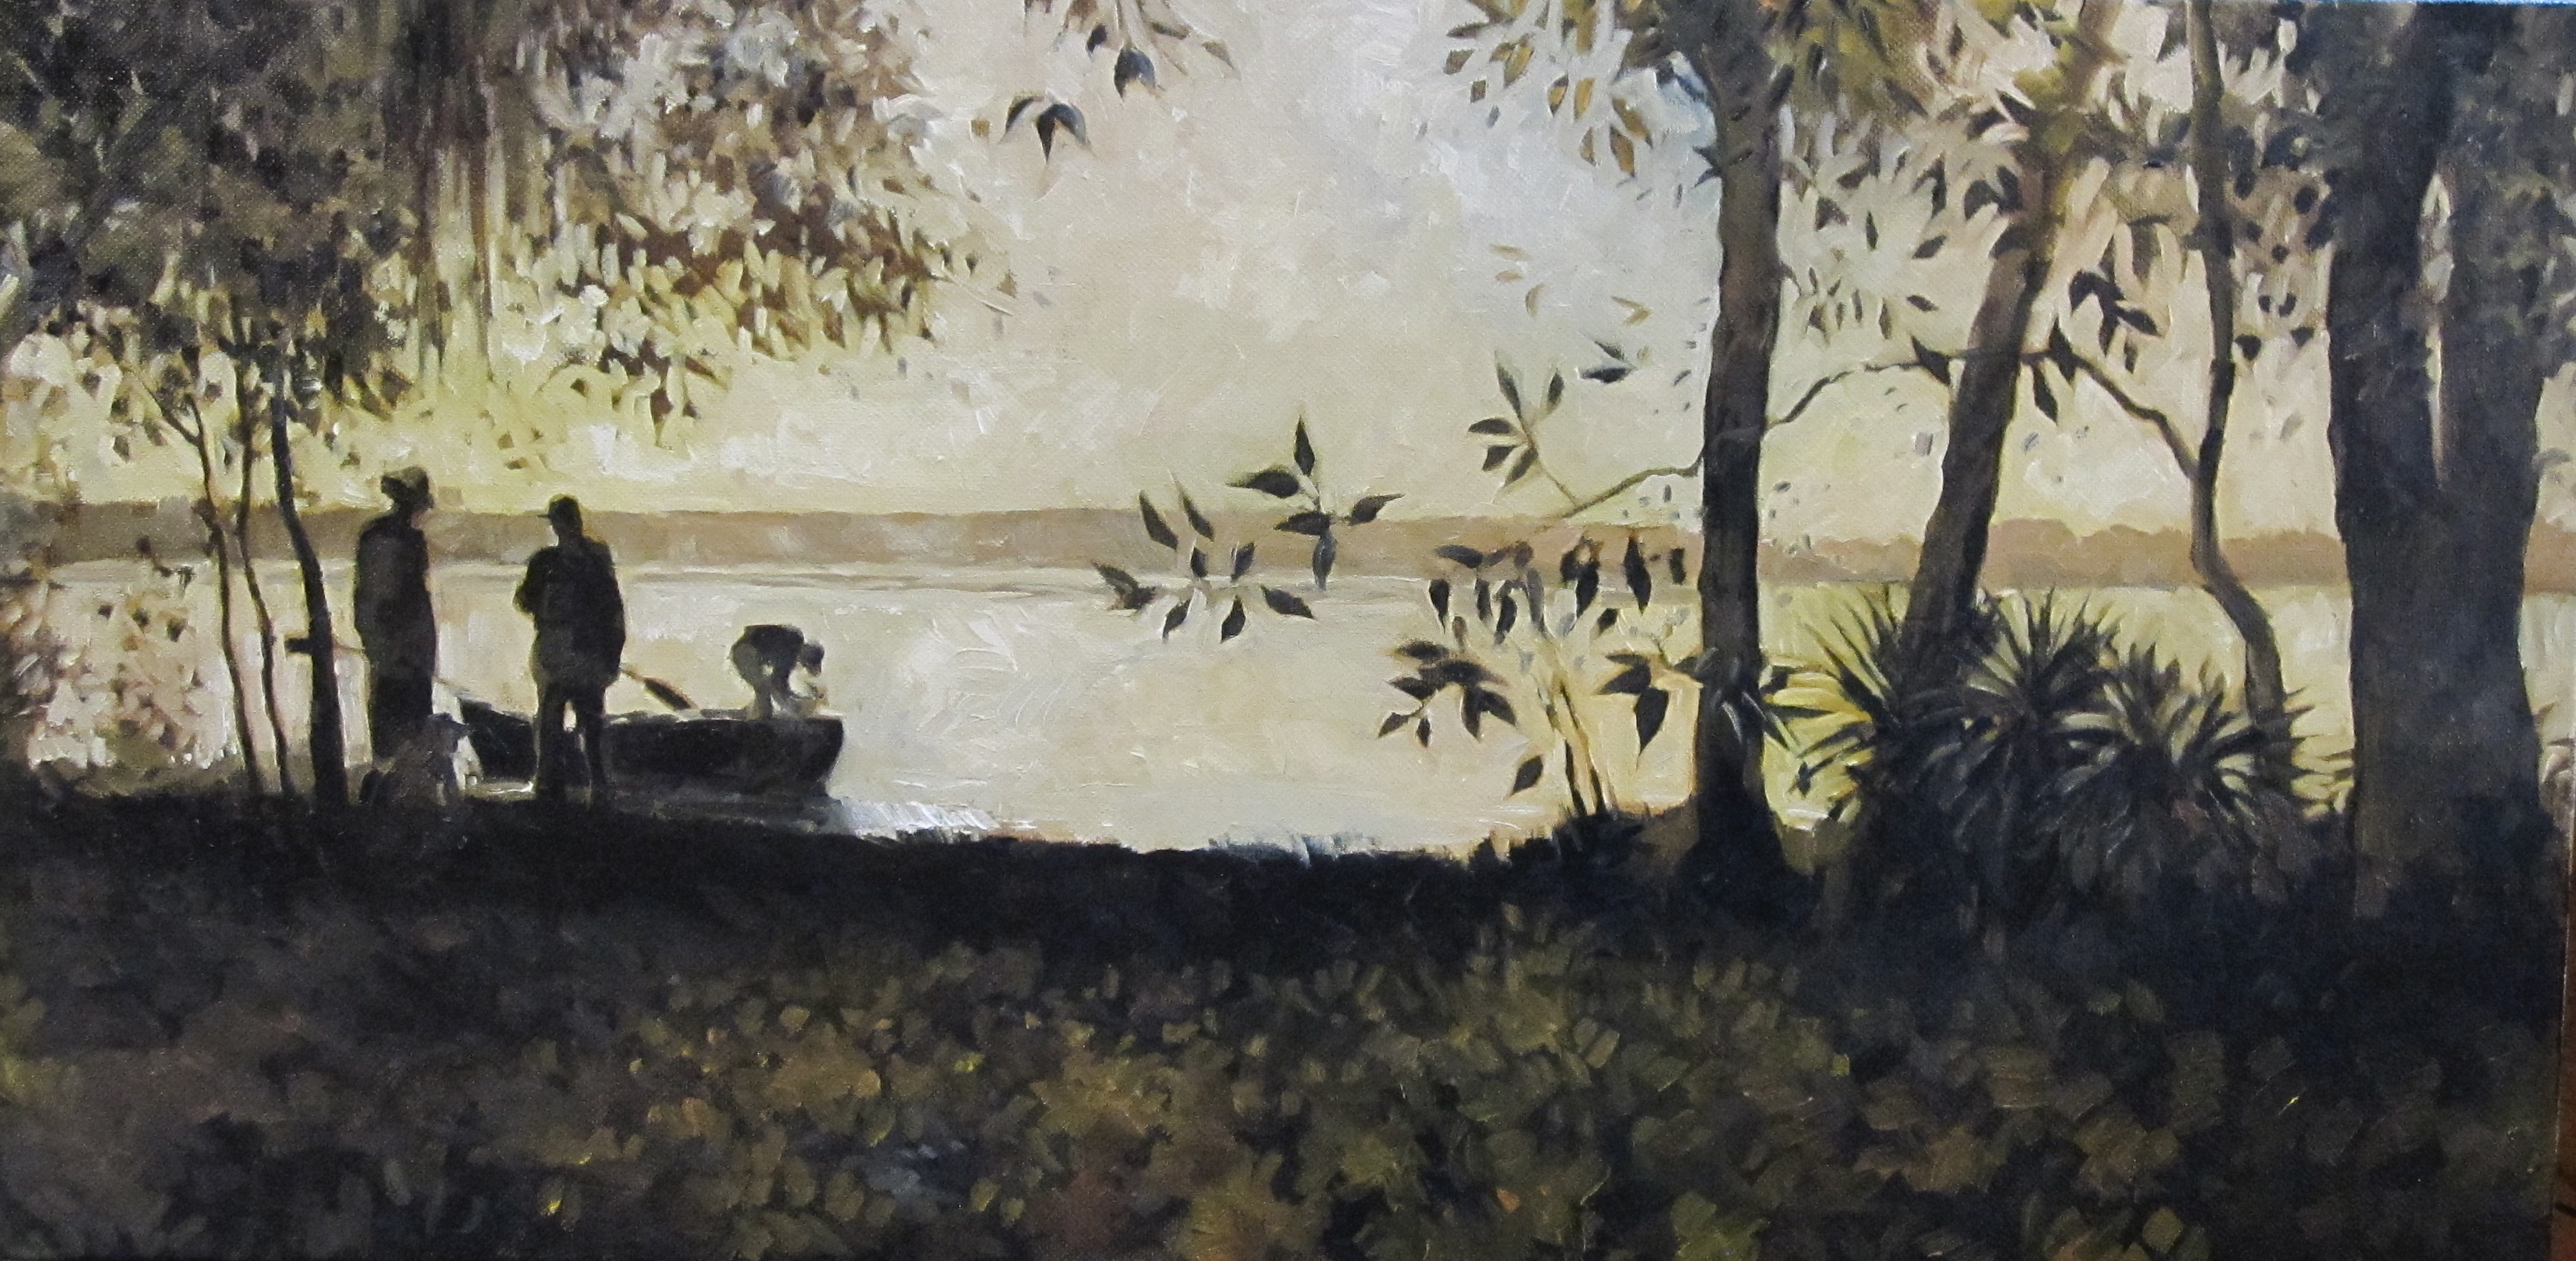 A view from the cabin to the lake - painting by E. Blair